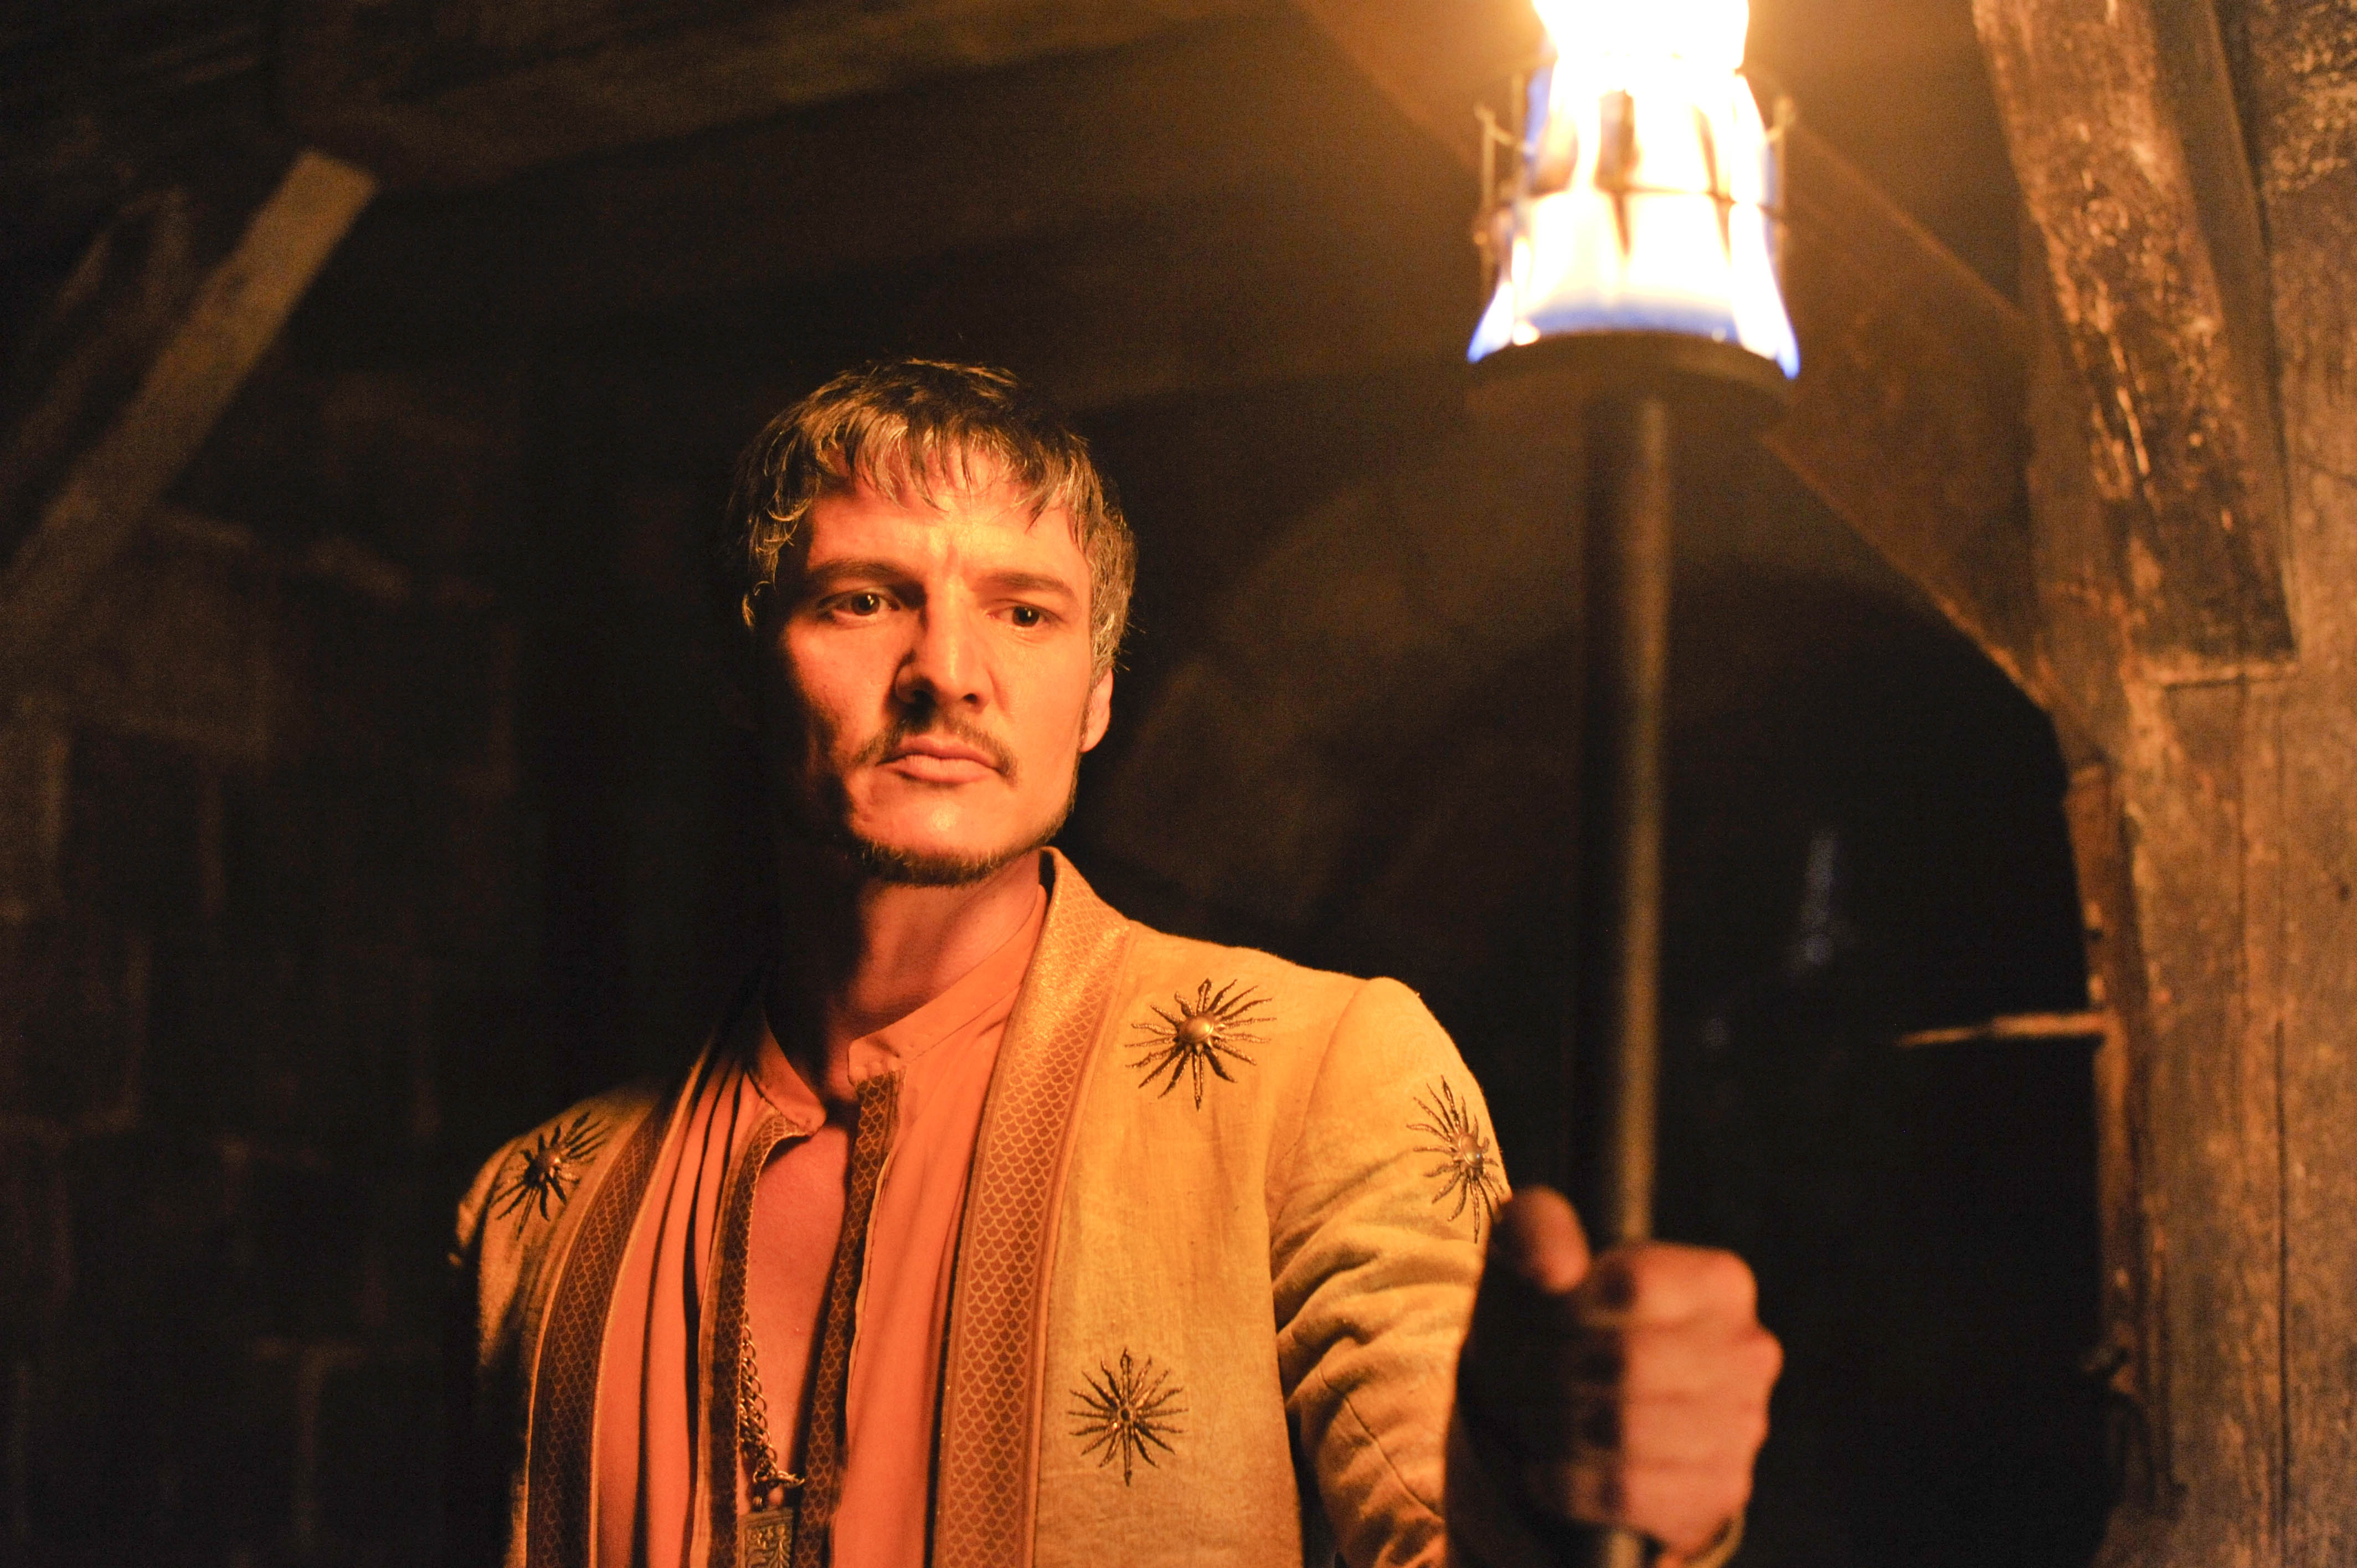 house martell images oberyn martell hd wallpaper and background photos 37118338. Black Bedroom Furniture Sets. Home Design Ideas